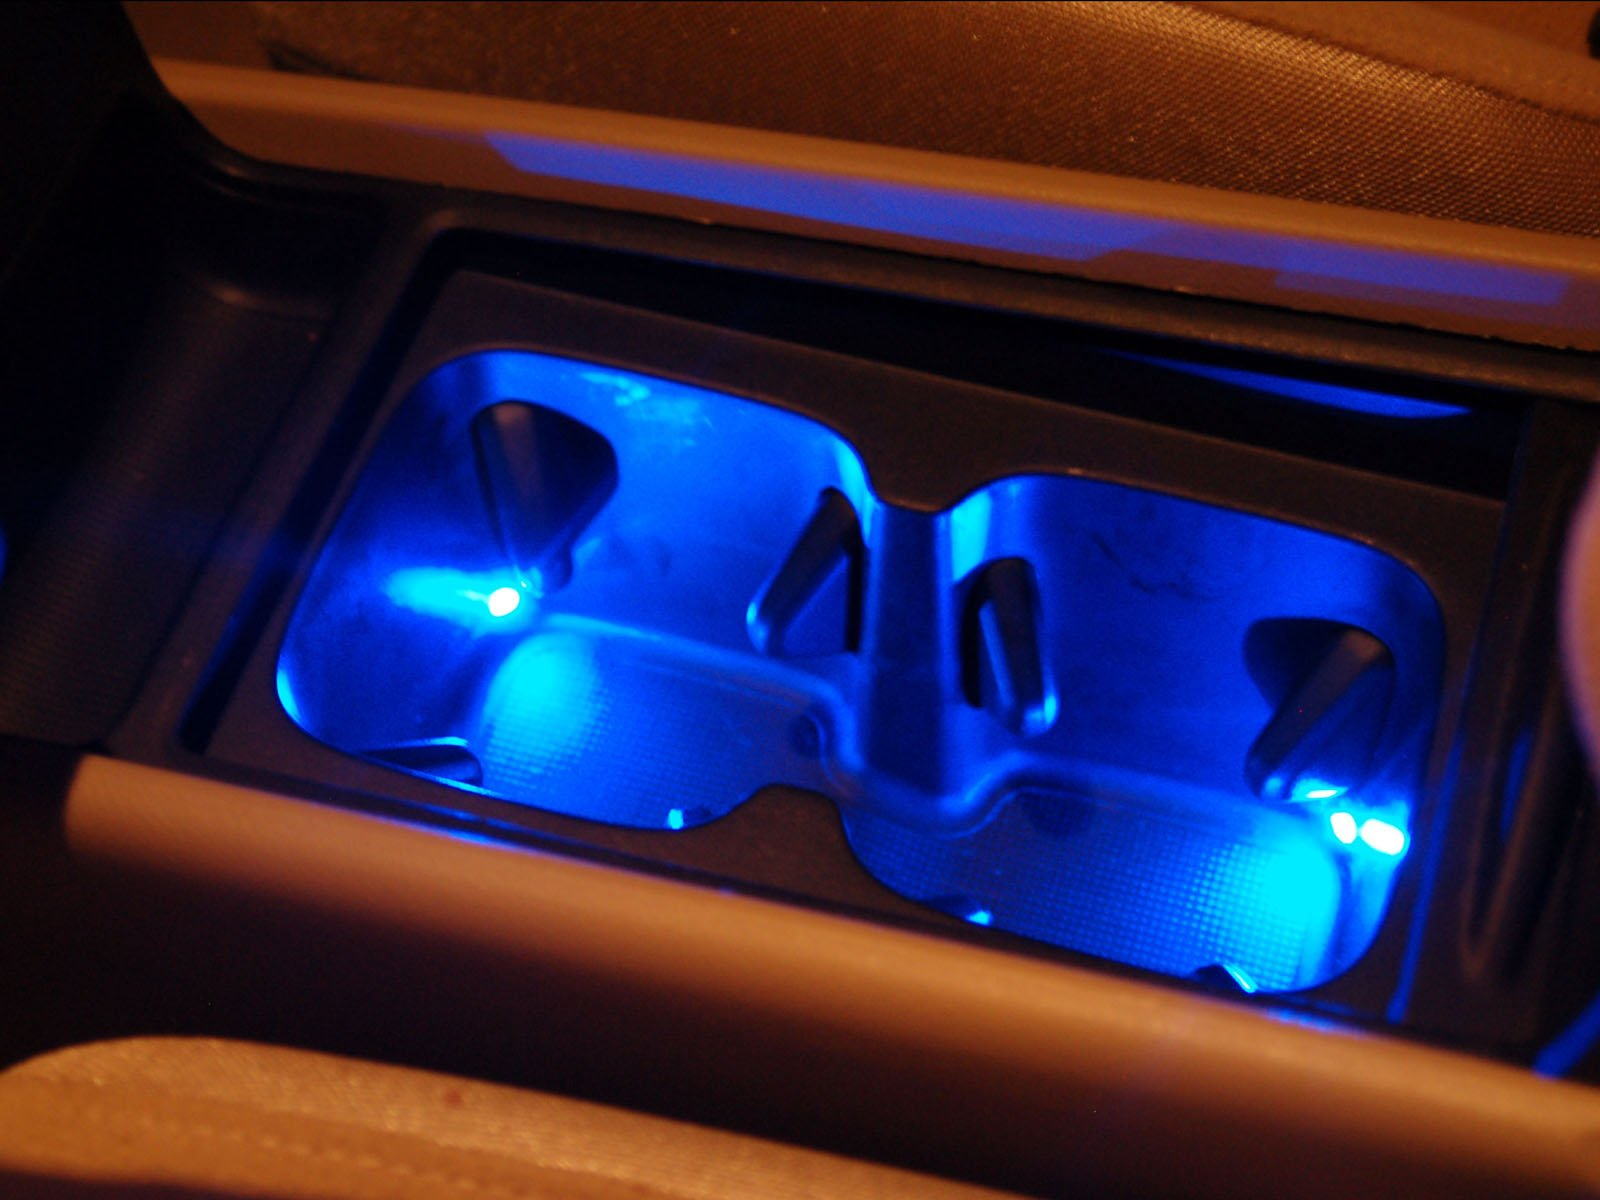 diy ambient lighting. DIY: Ambient Lighting, Cup Holder, Under The Dash, And Change Pocket Diy Lighting W